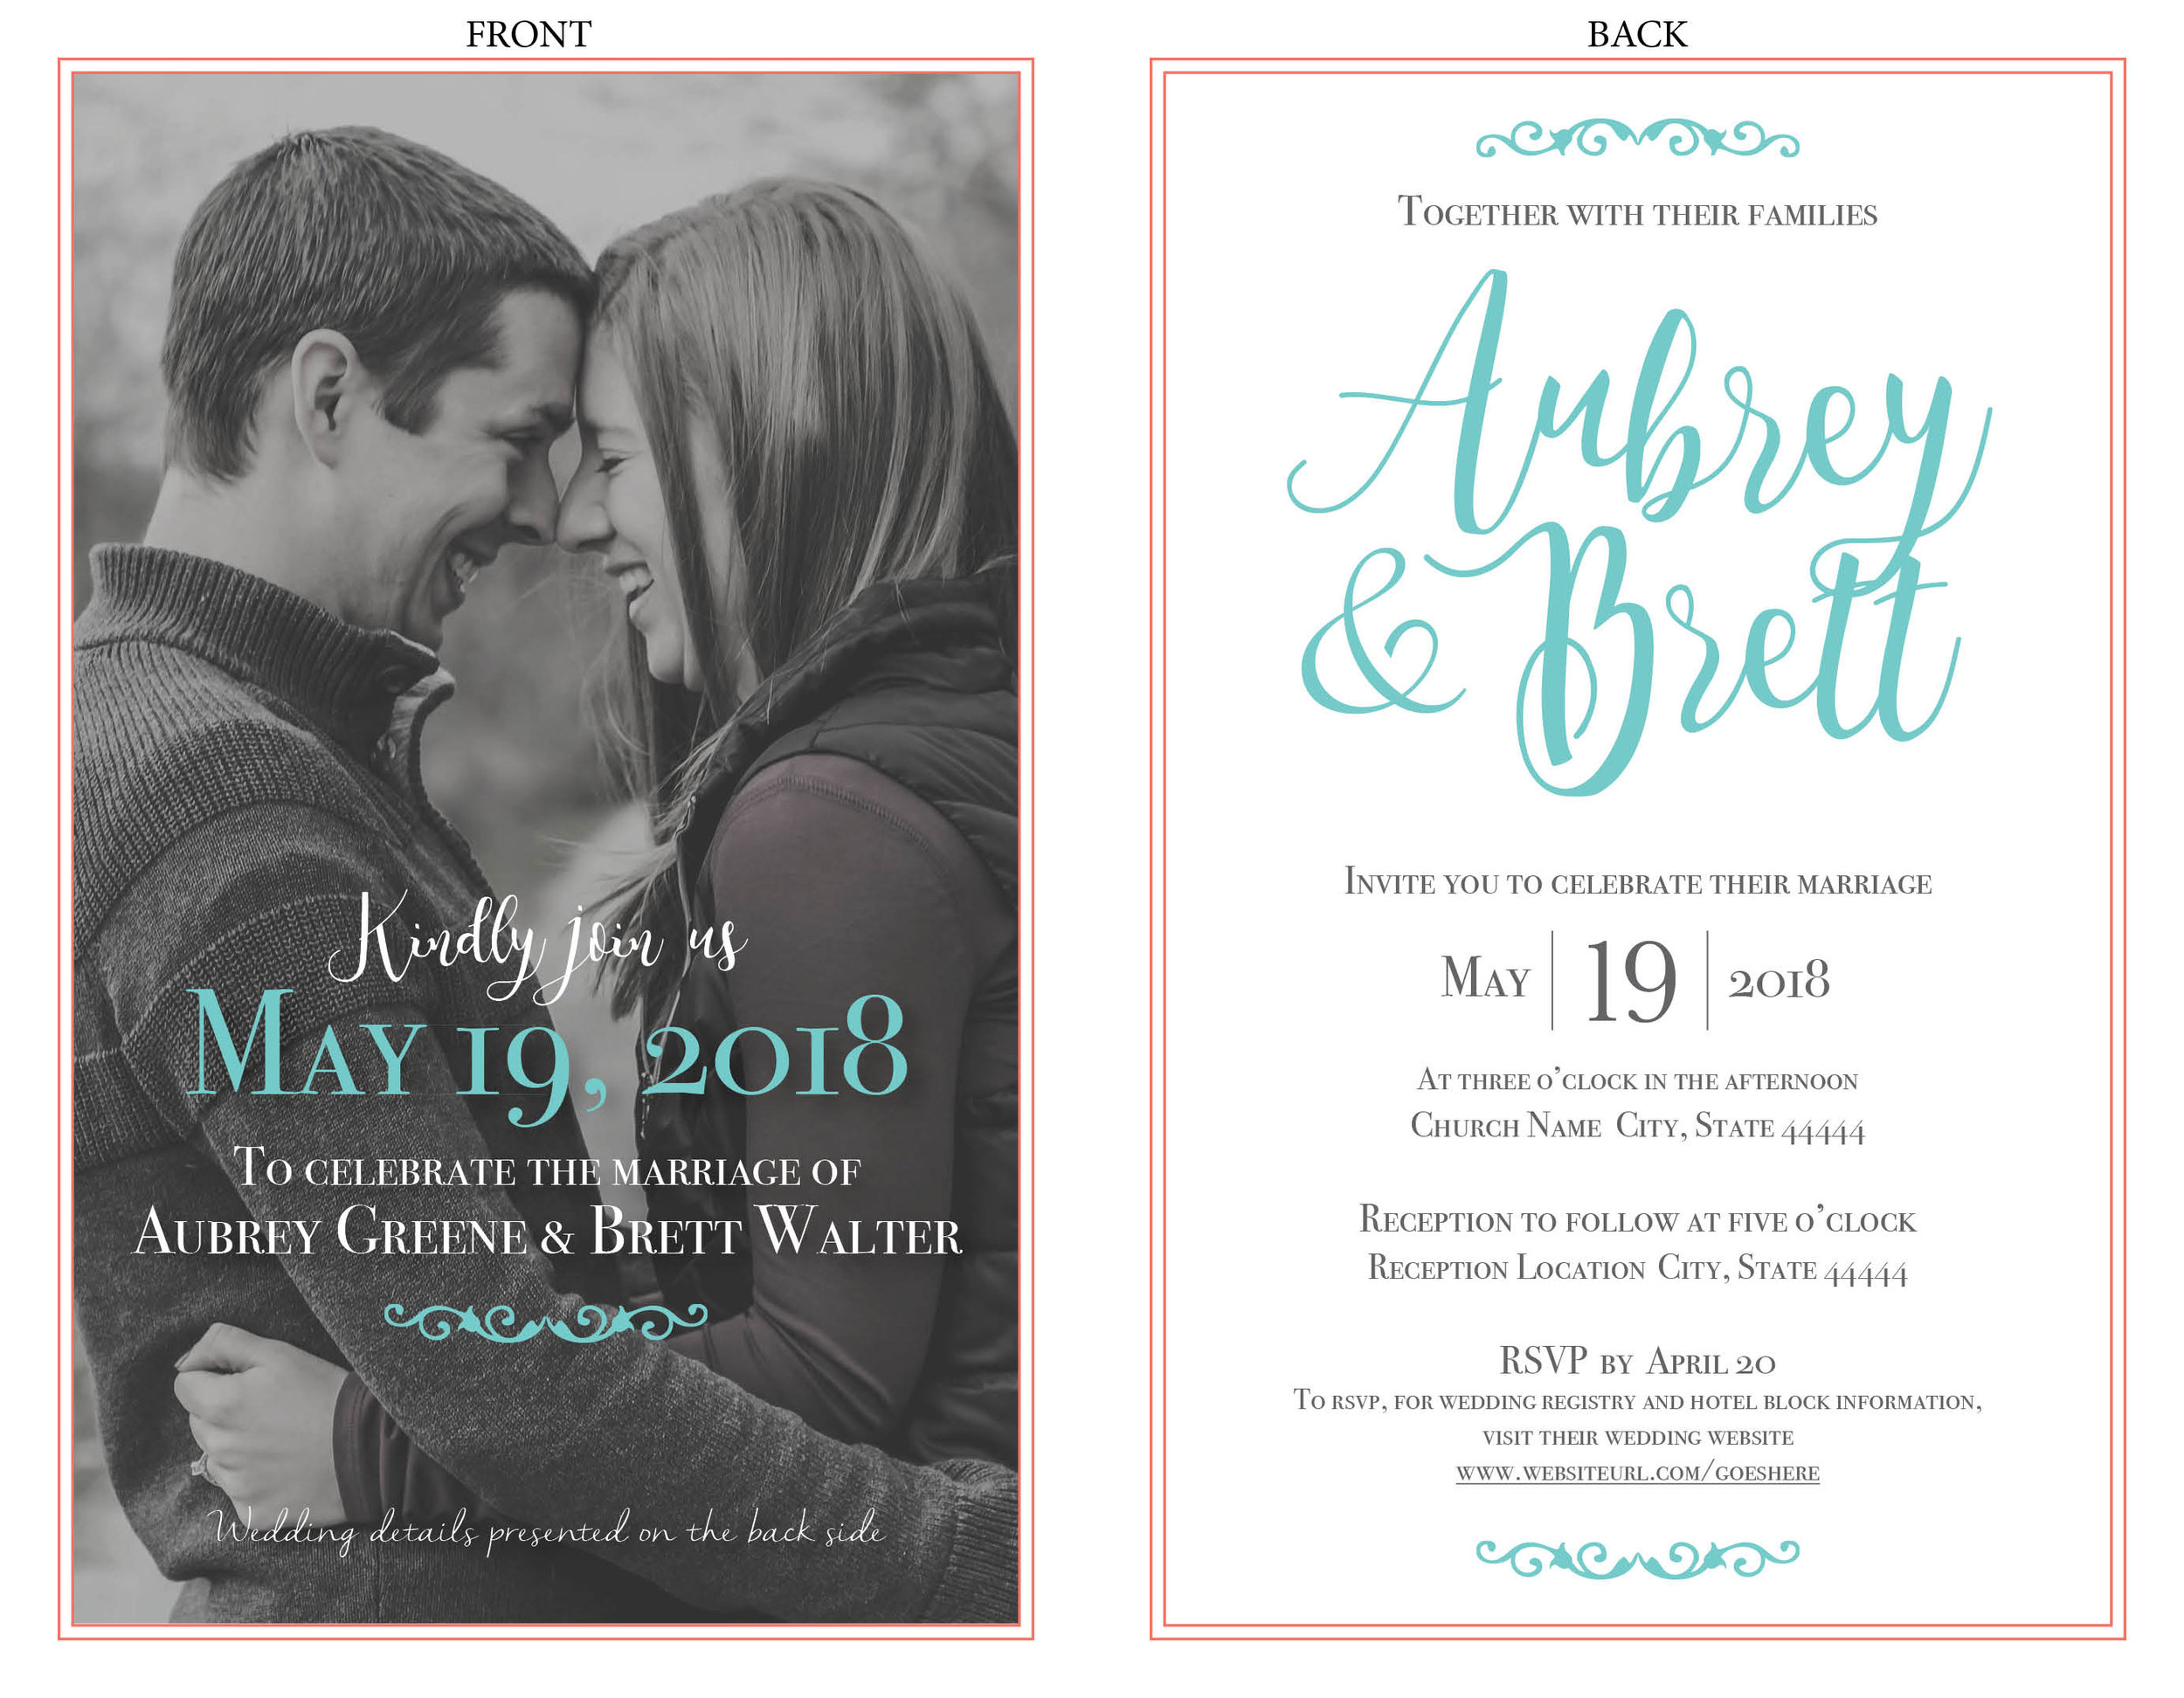 Portfolio-Greene-Walter-Wedding-Invite-final-nobleed2.jpg